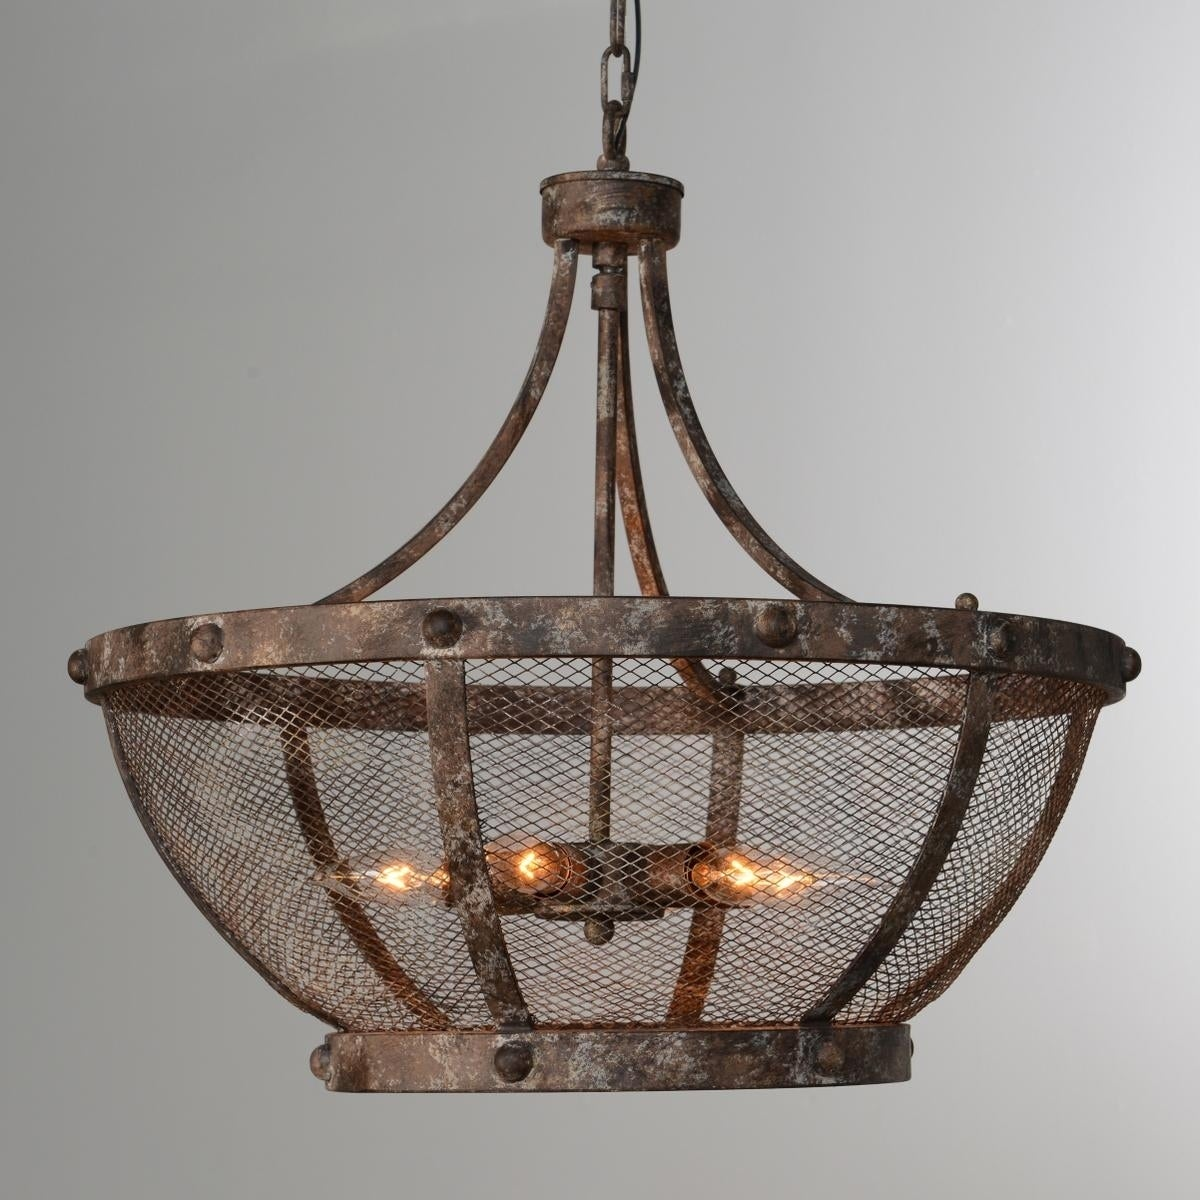 Rustic Ceiling Lights Shop Our Best Lighting Ceiling